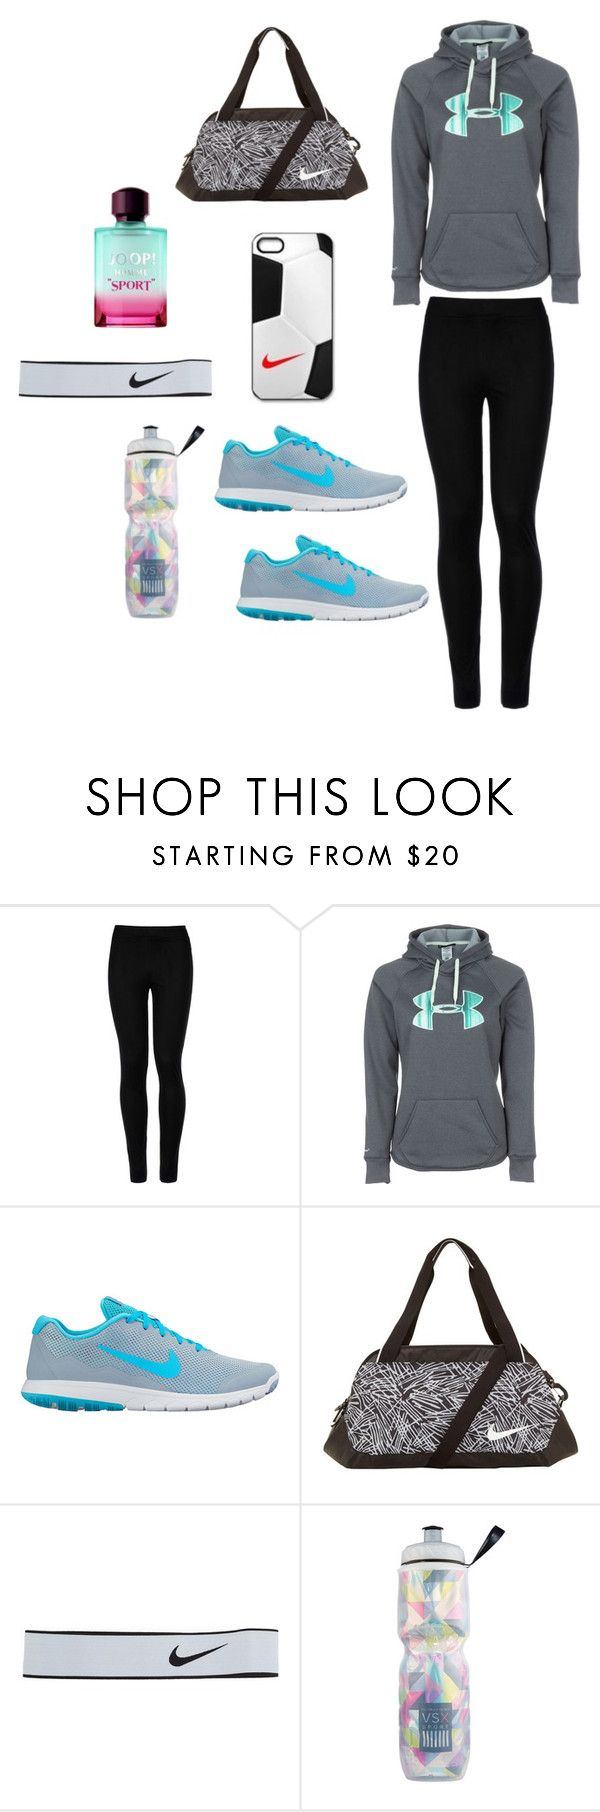 """Sporty Outfit"" by kayanna2 ❤ liked on Polyvore featuring Wolford, Under Armour, NIKE, Victoria's Secret and Joop"